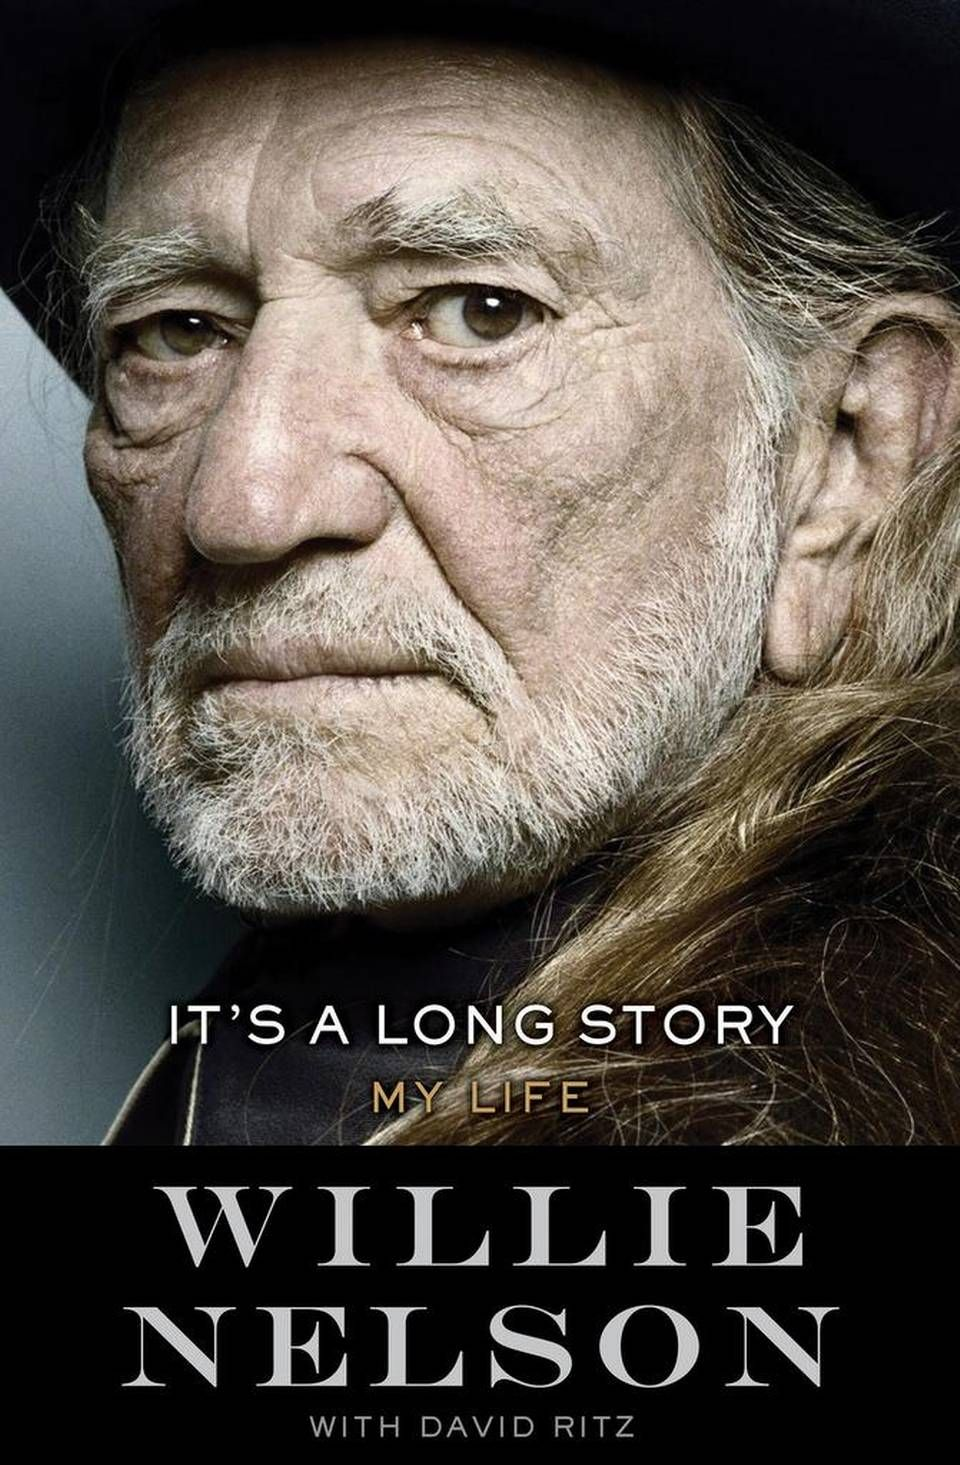 Download Willie Nelson: My Life Full-Movie Free